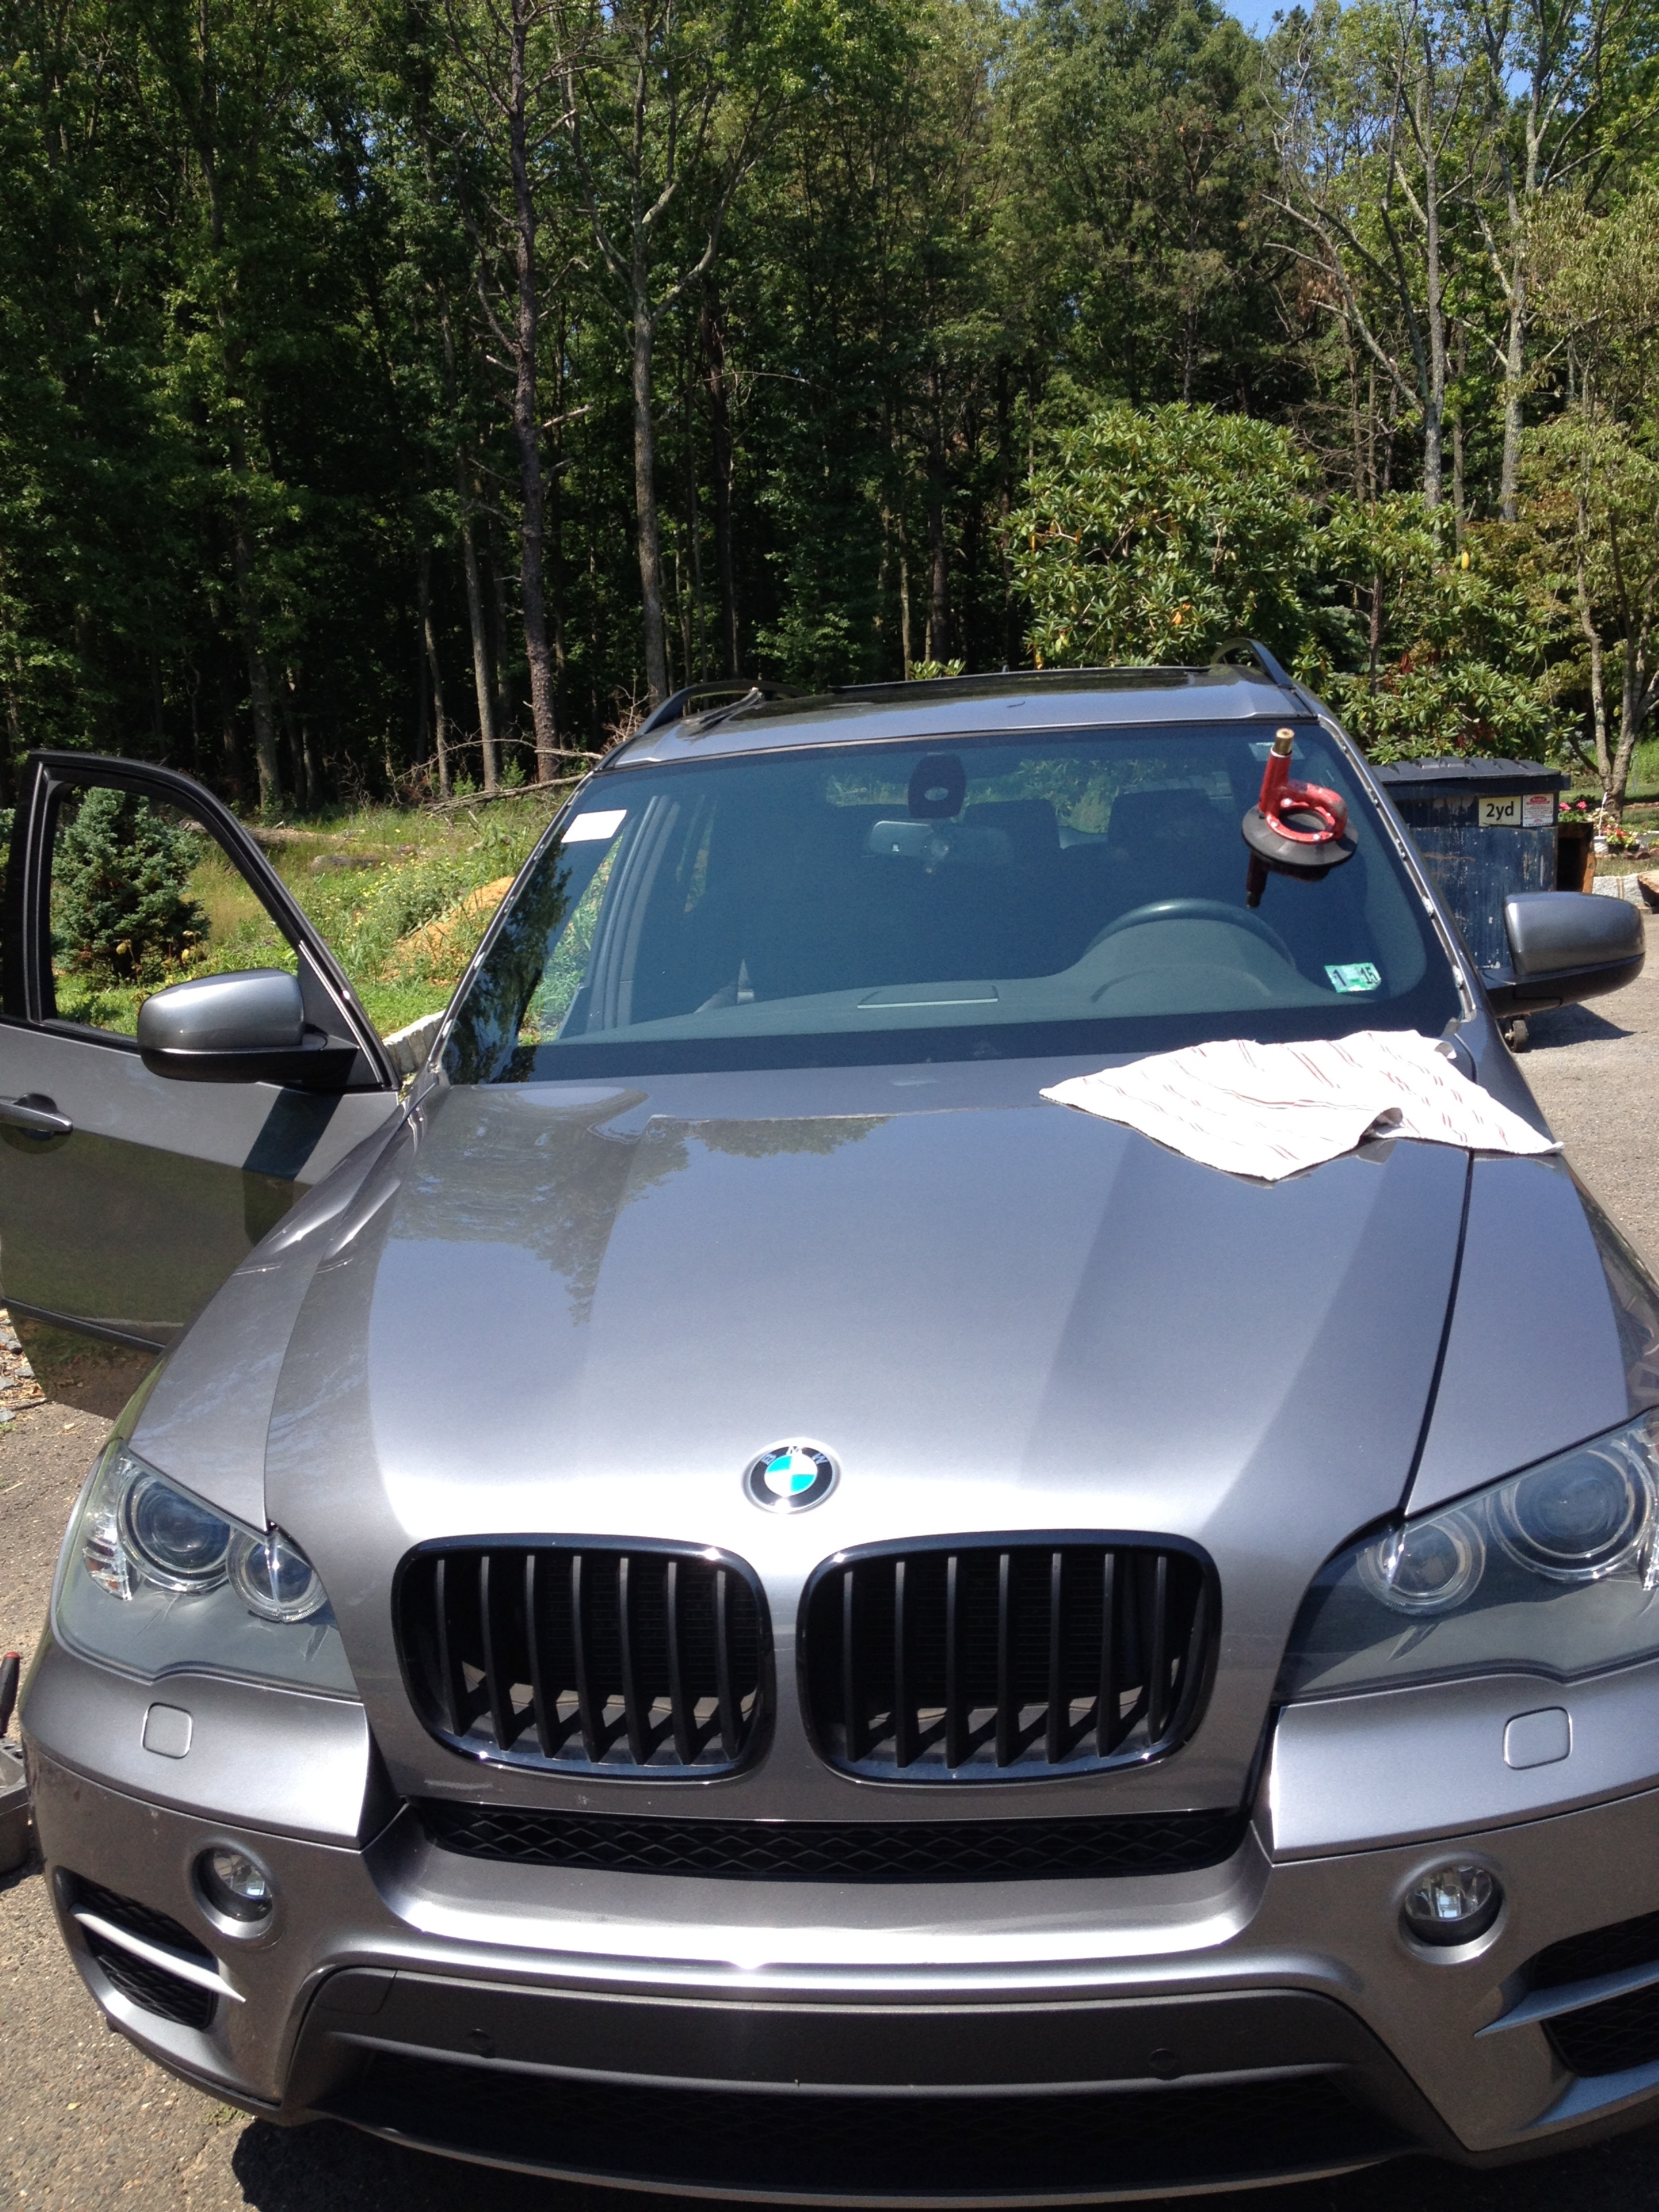 2012 BMW X5 install done Windshield Replacement by Morris County Platinum Auto Glass NJ@platinumautoglassnj